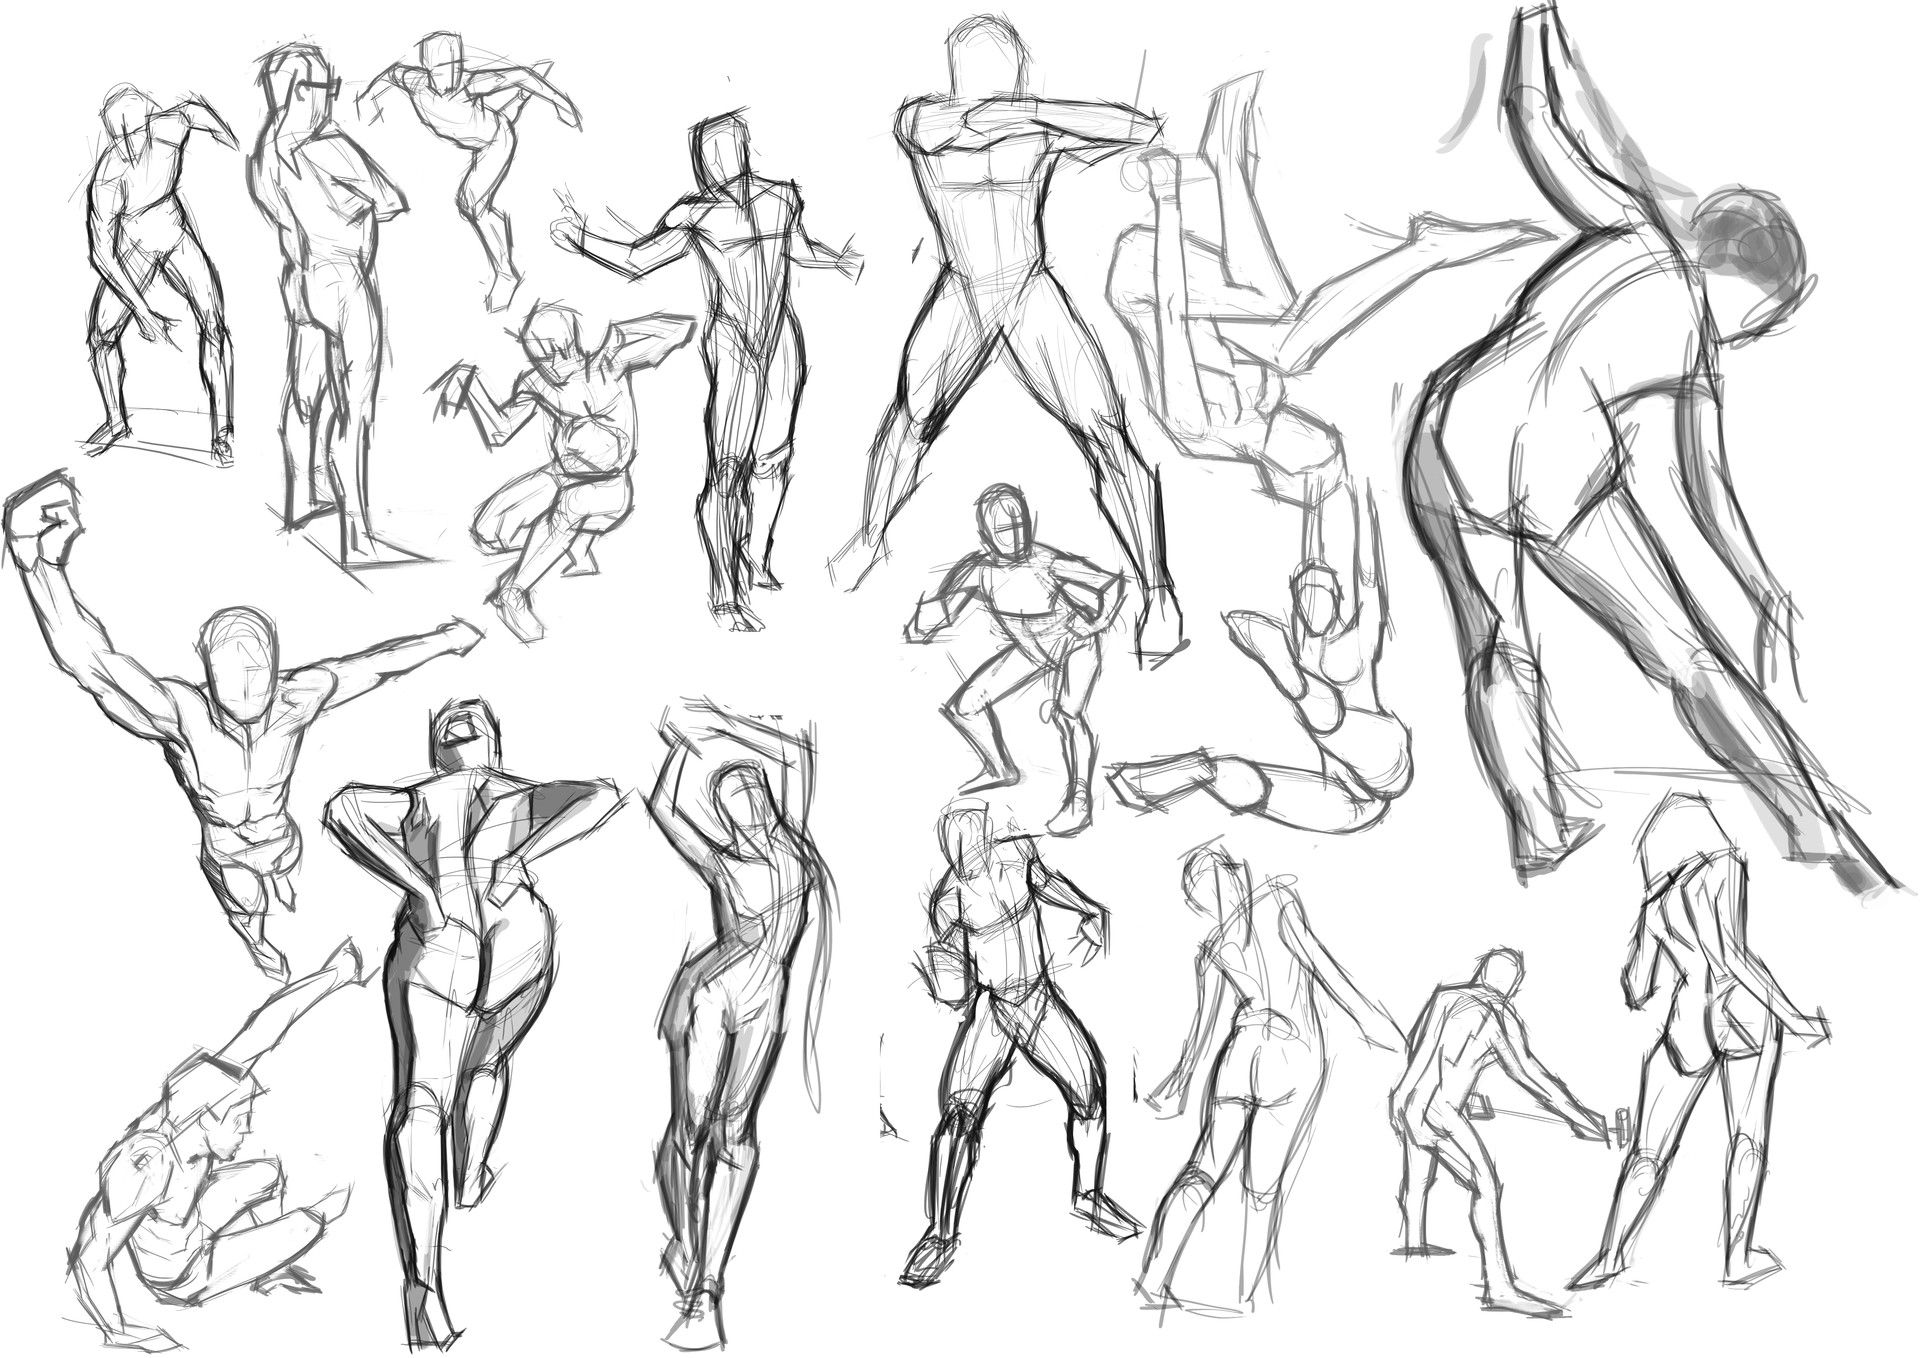 Omar Alcazar Study Of Anatomy